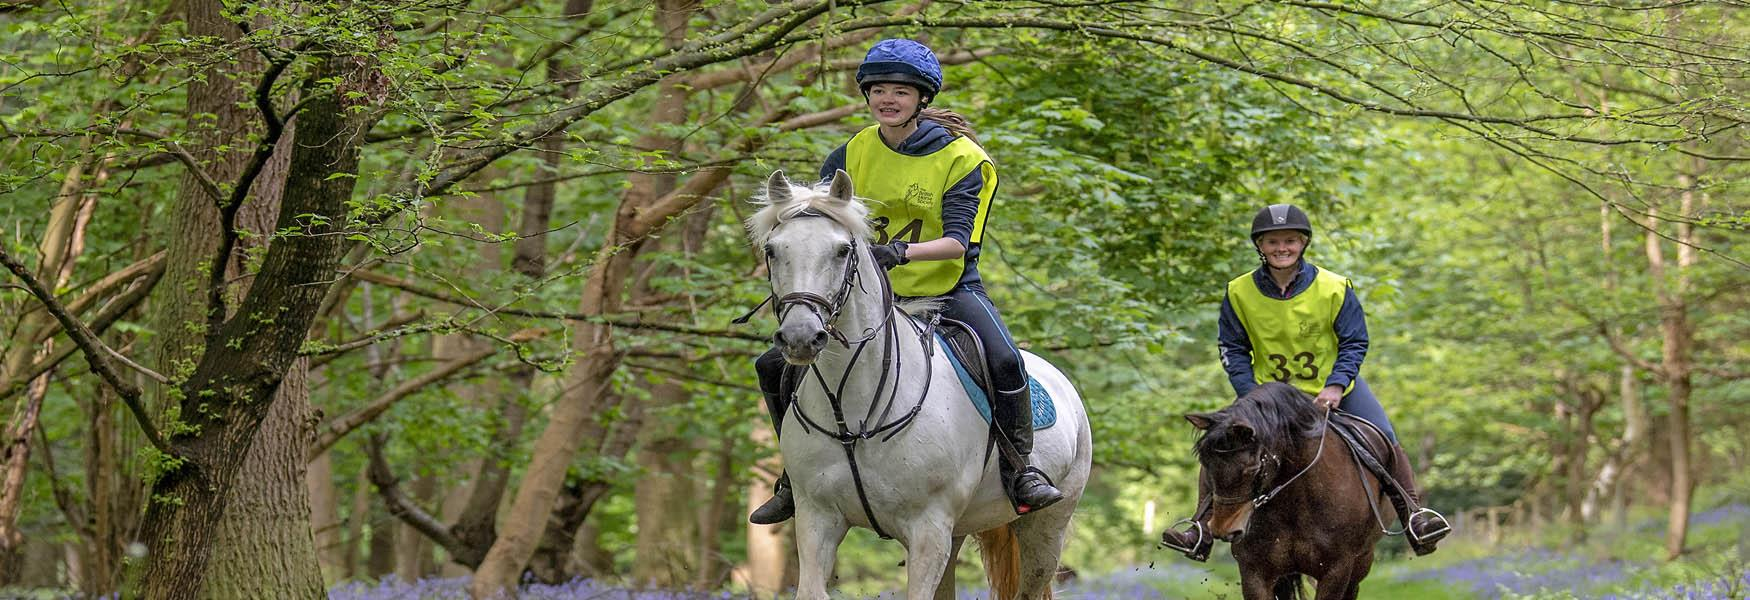 Greensand Country horse riding header image